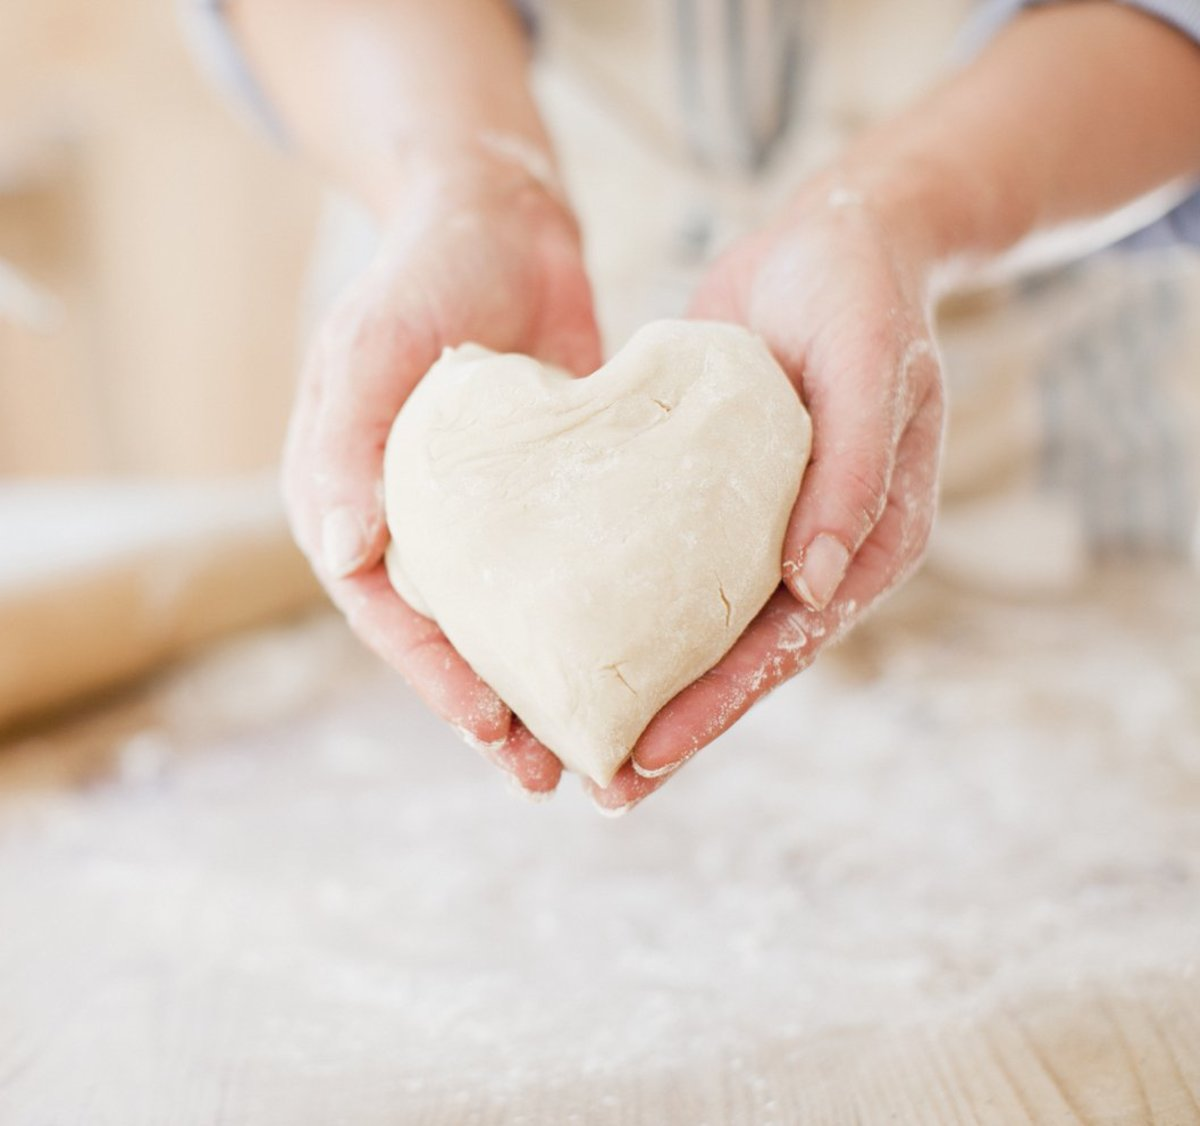 Where's the Love? Not in Your Food, Says FDA